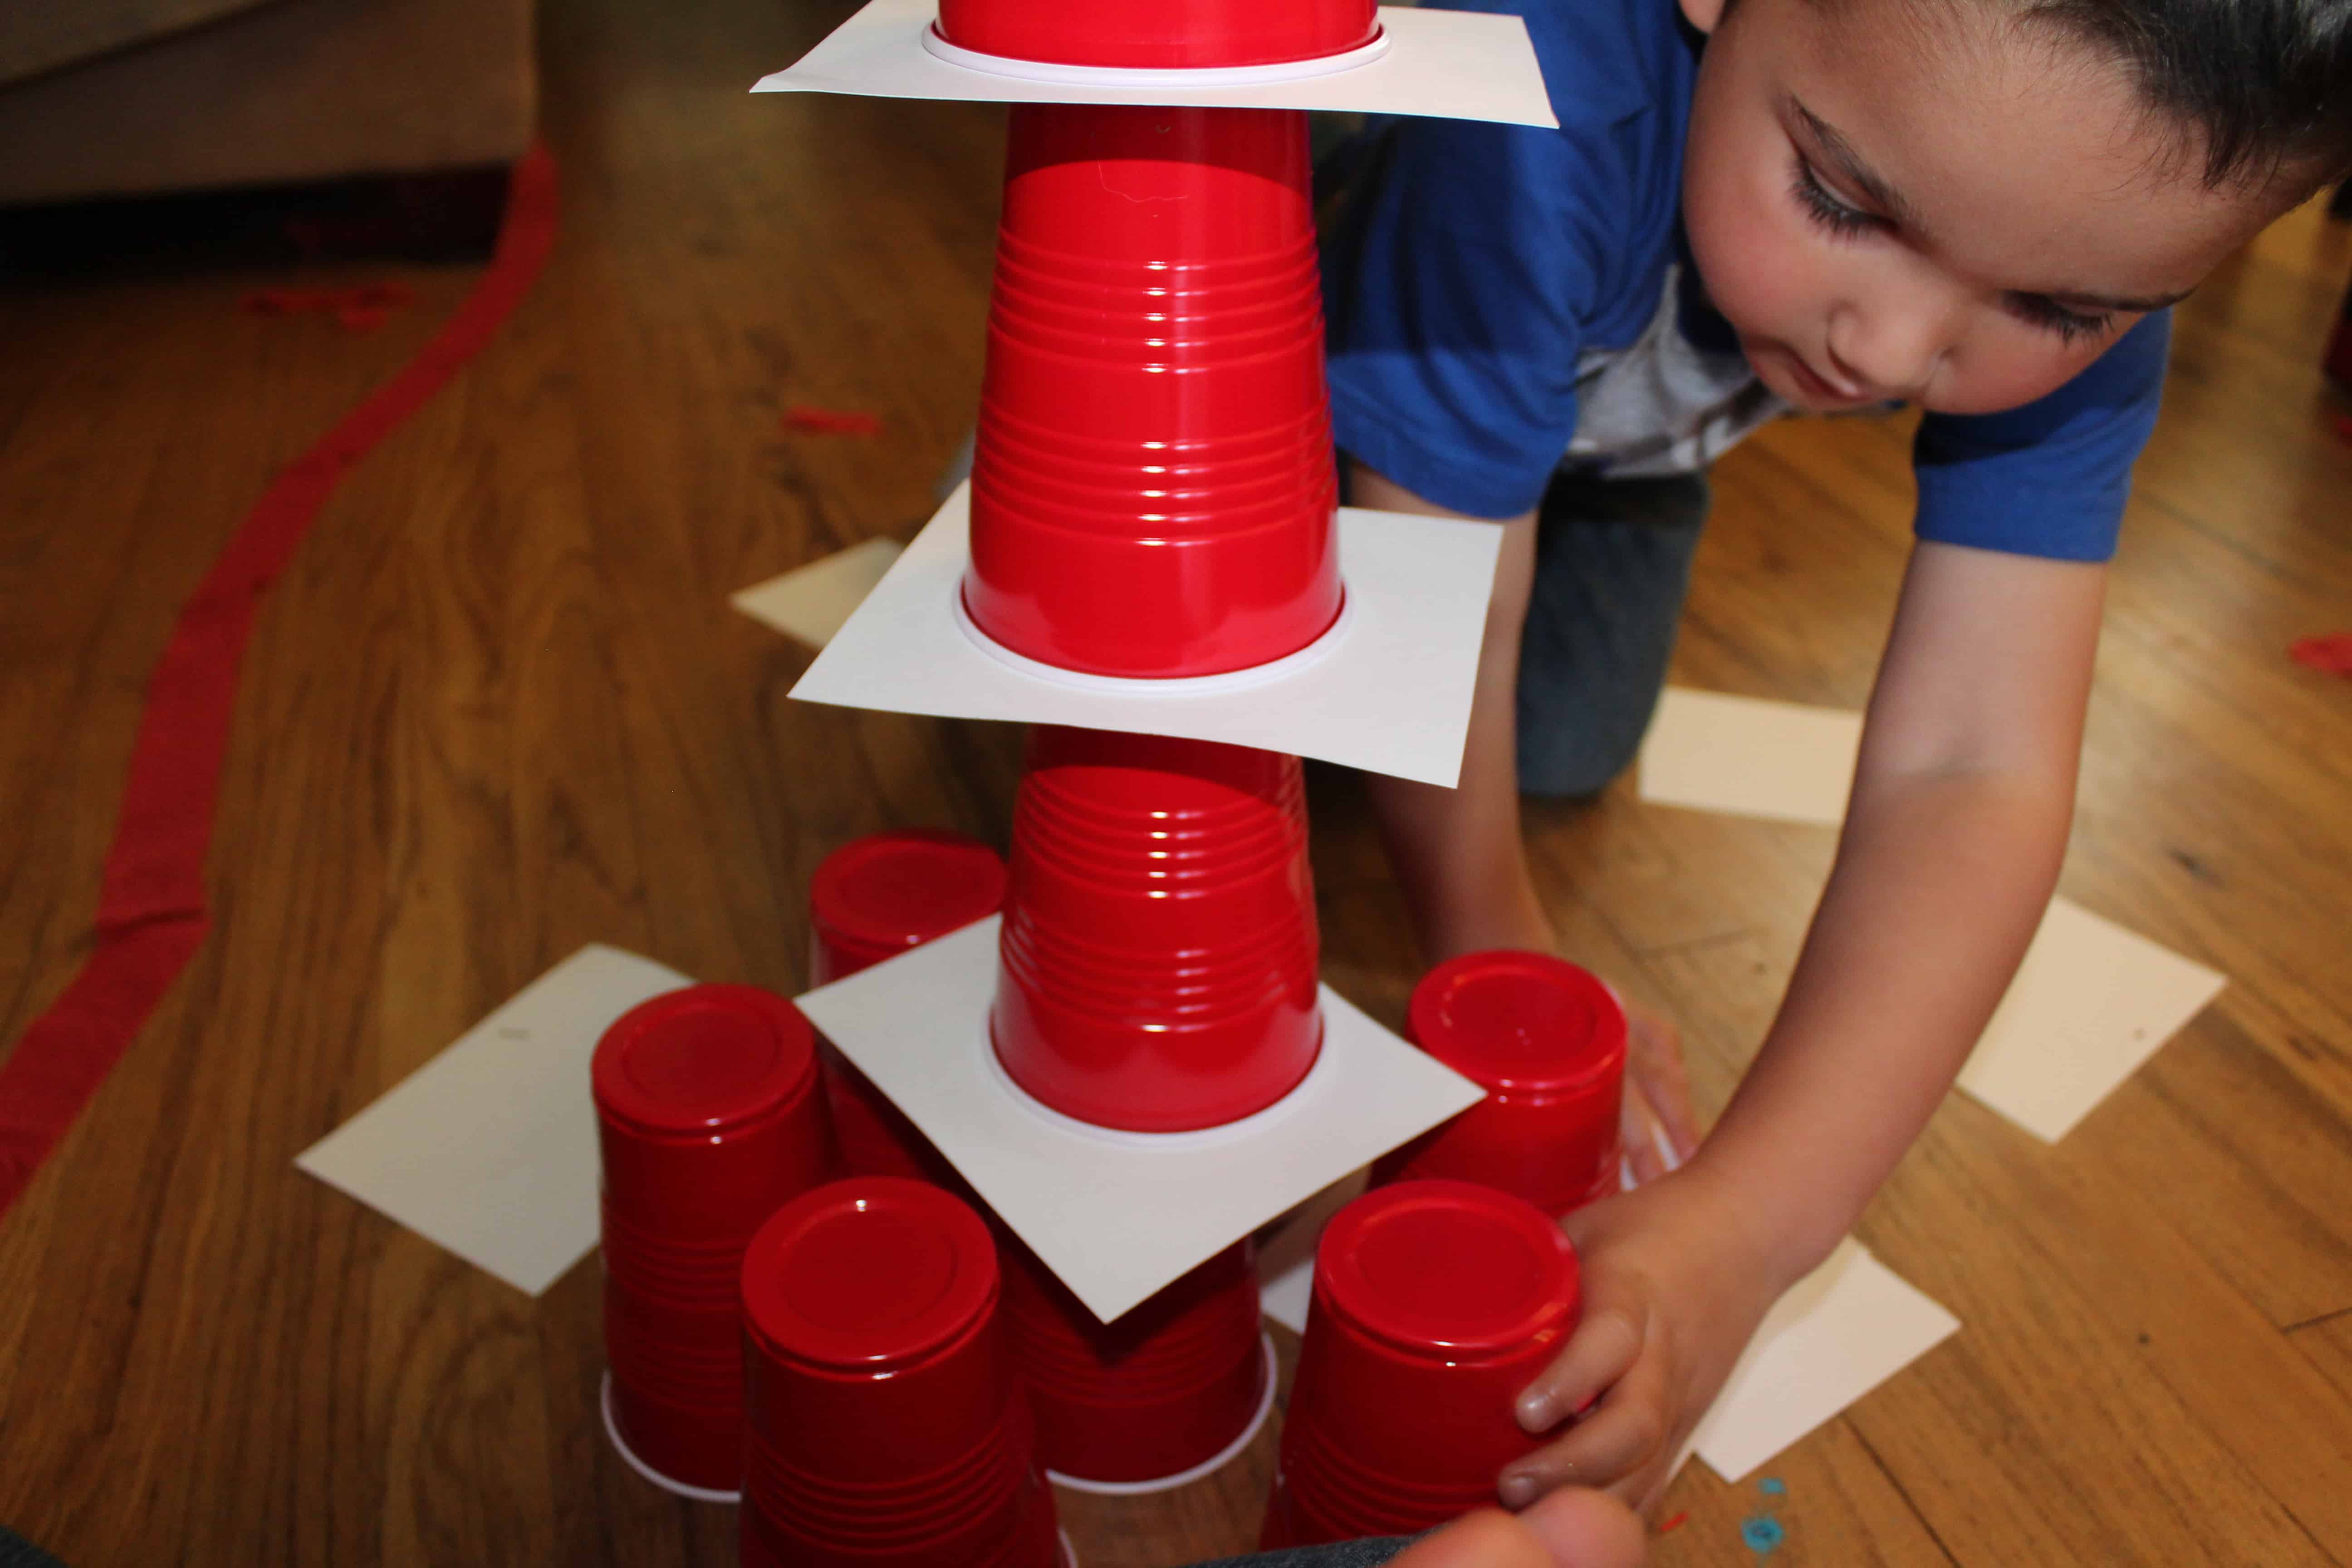 preschooler building a tower with red solo cups and white paper